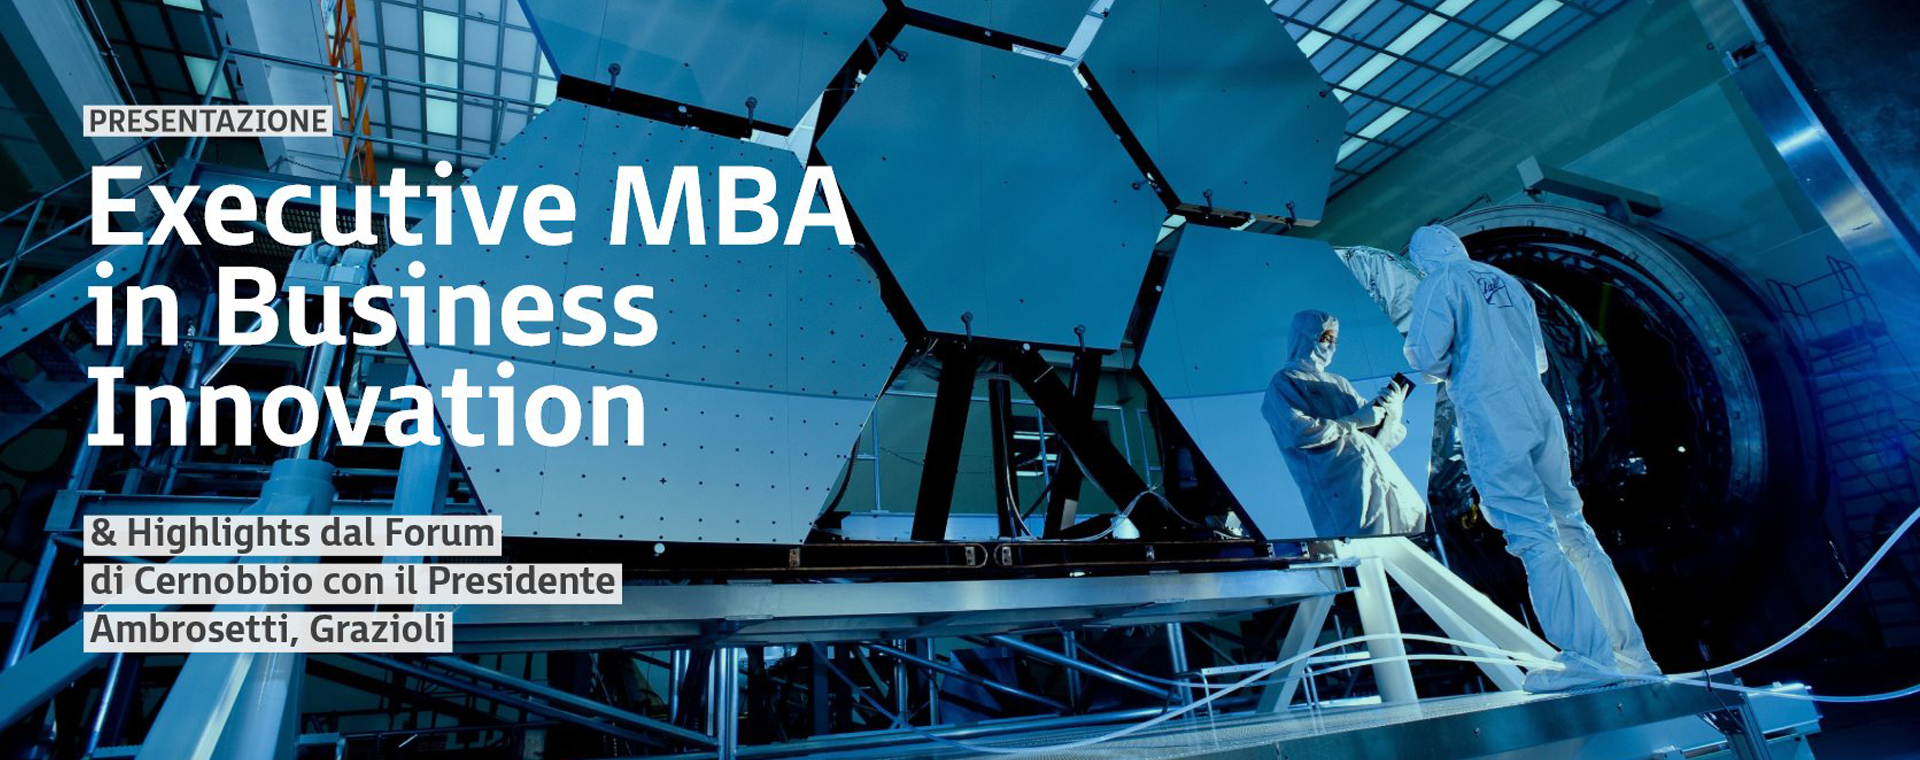 Immagine: EXECUTIVE MBA IN BUSINESS INNOVATION